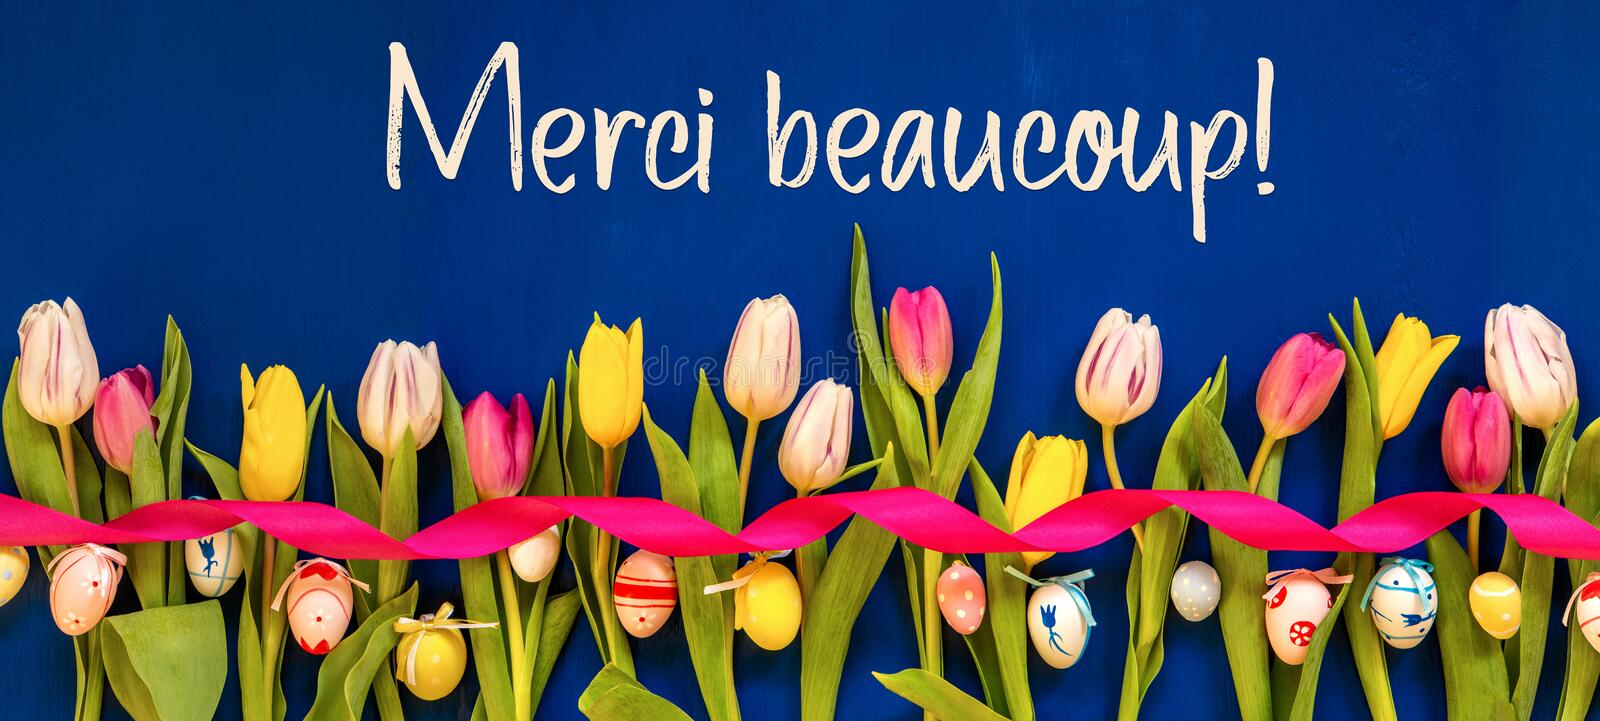 Banner With Colorful Tulip, Merci Beaucoup Means Thank You, Easter Egg. French Text Merci Beaucoup Means Thank You. Banner Of White And Pink Tulip Spring Flowers stock photography